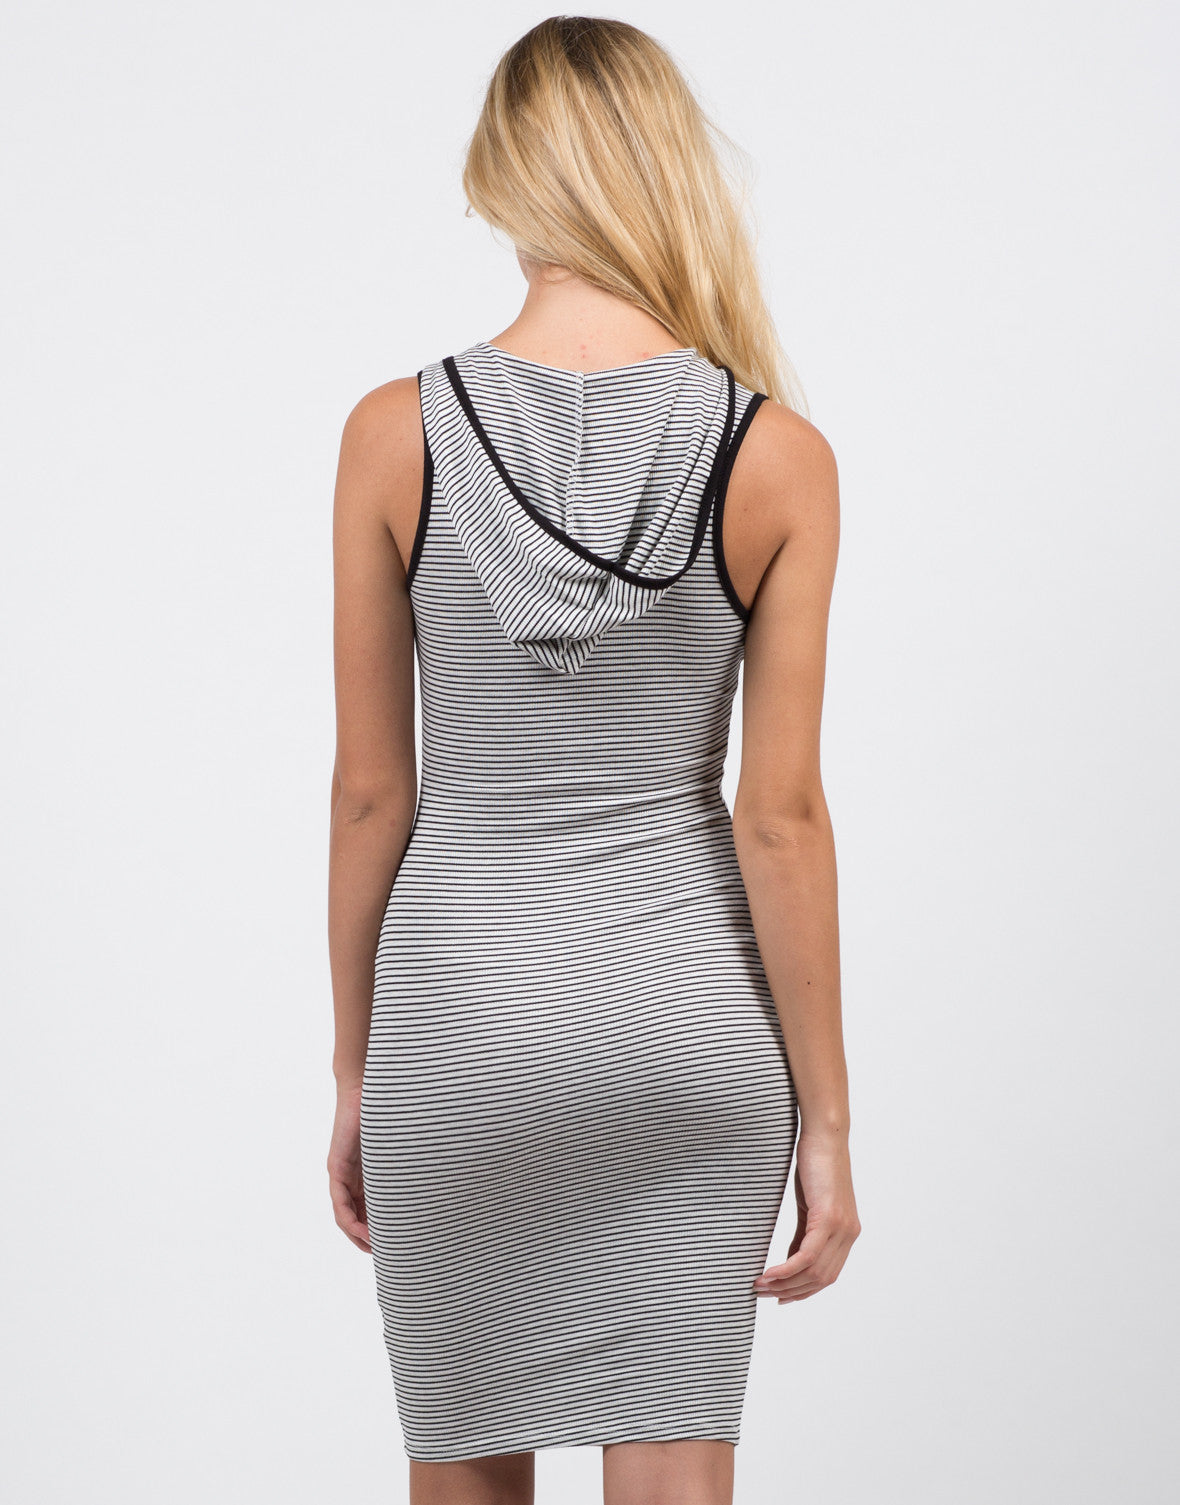 Back View of Stripe Hooded Dress